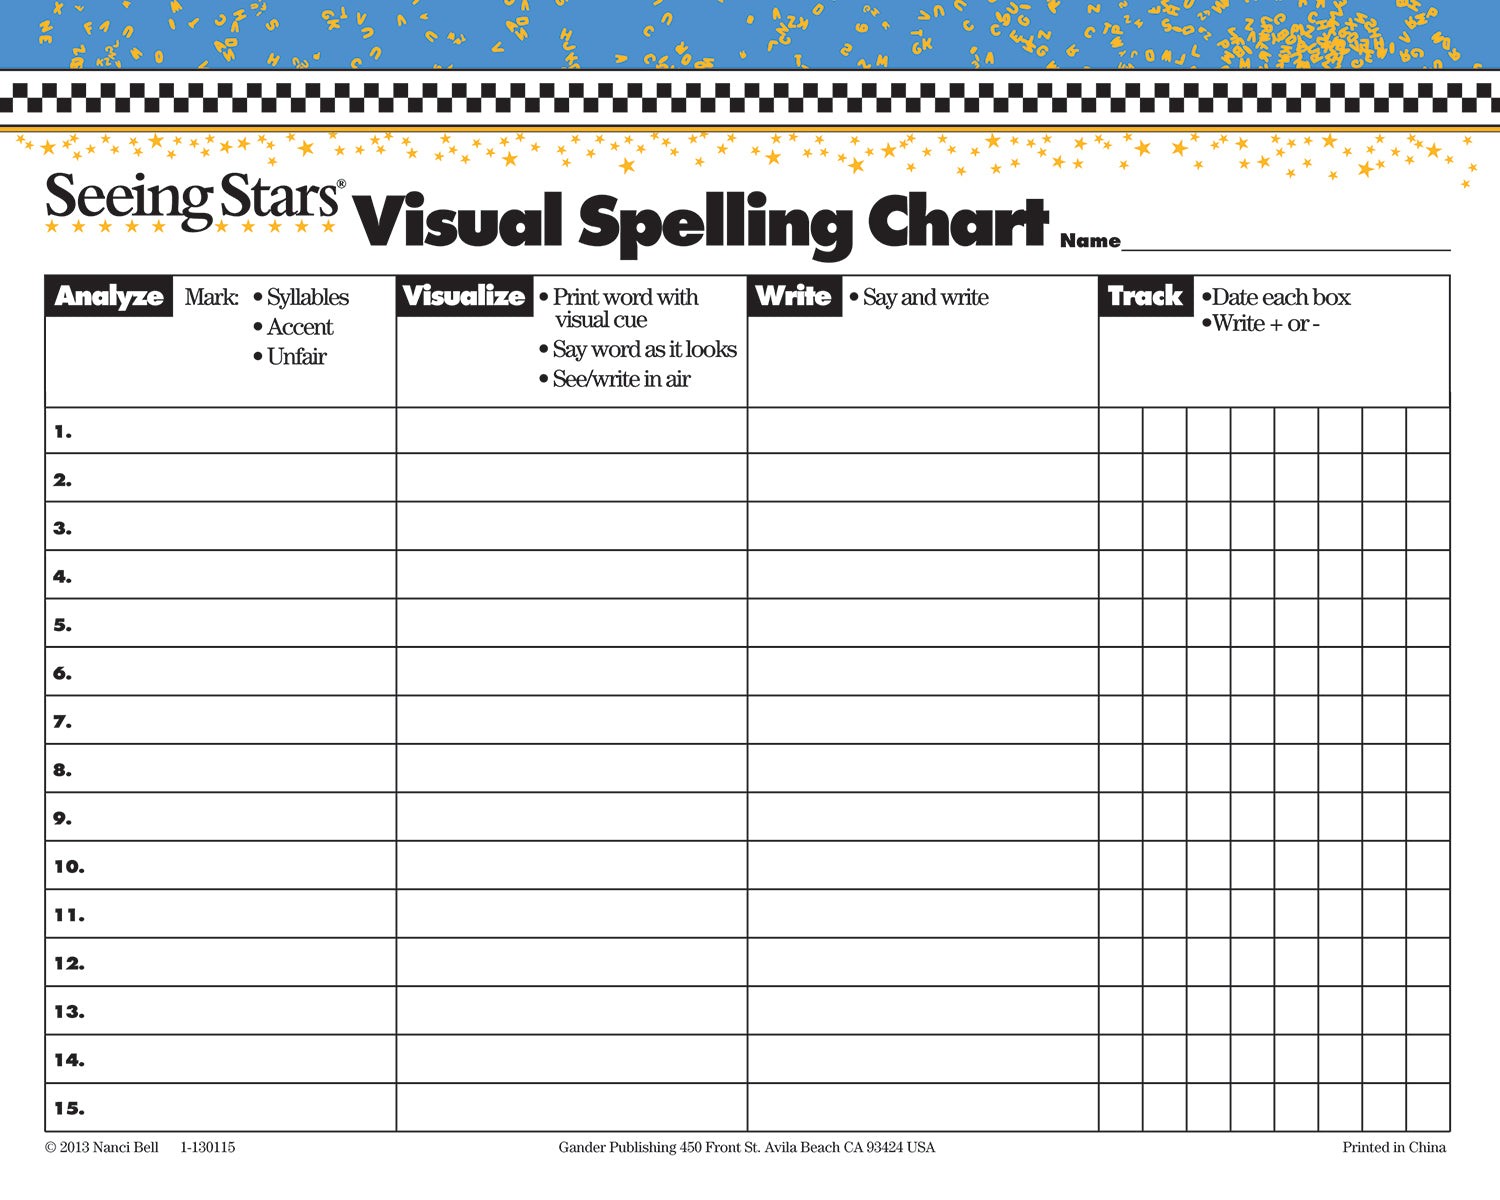 Seeing Stars® Visual Spelling Charts